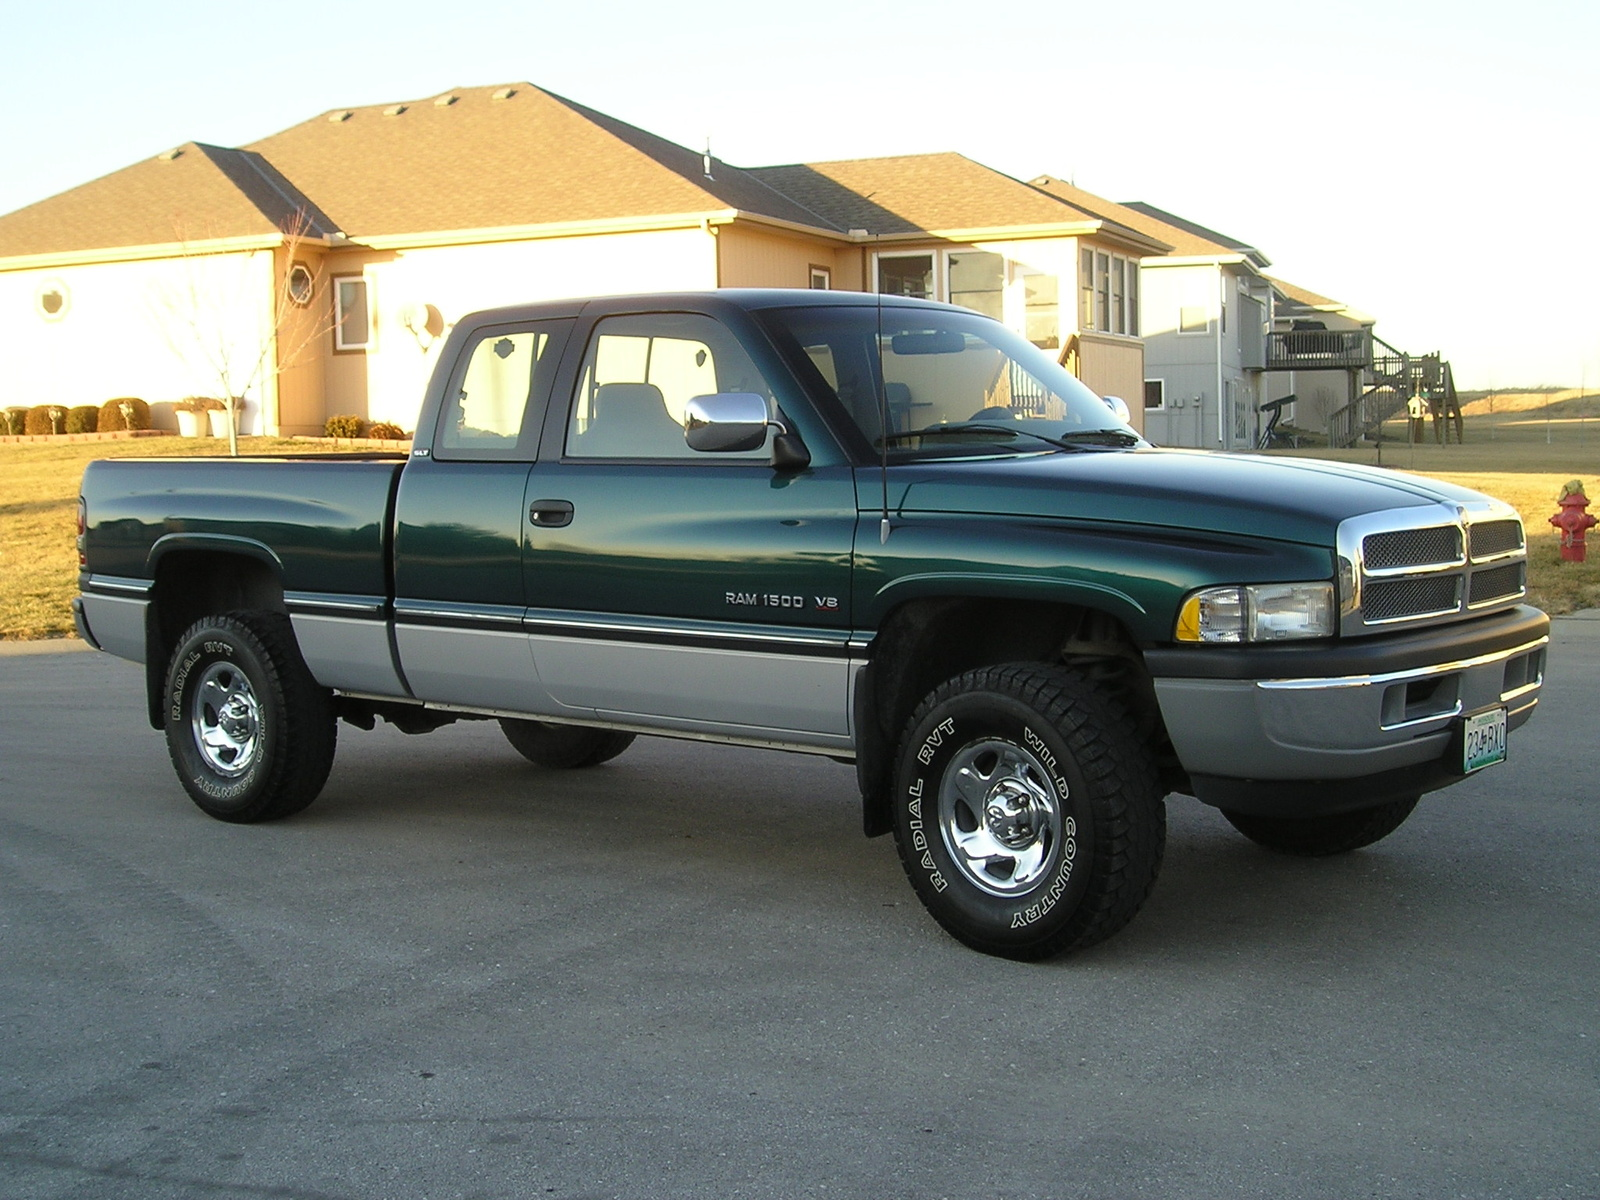 1995 Dodge Ram Pickup 1500 picture